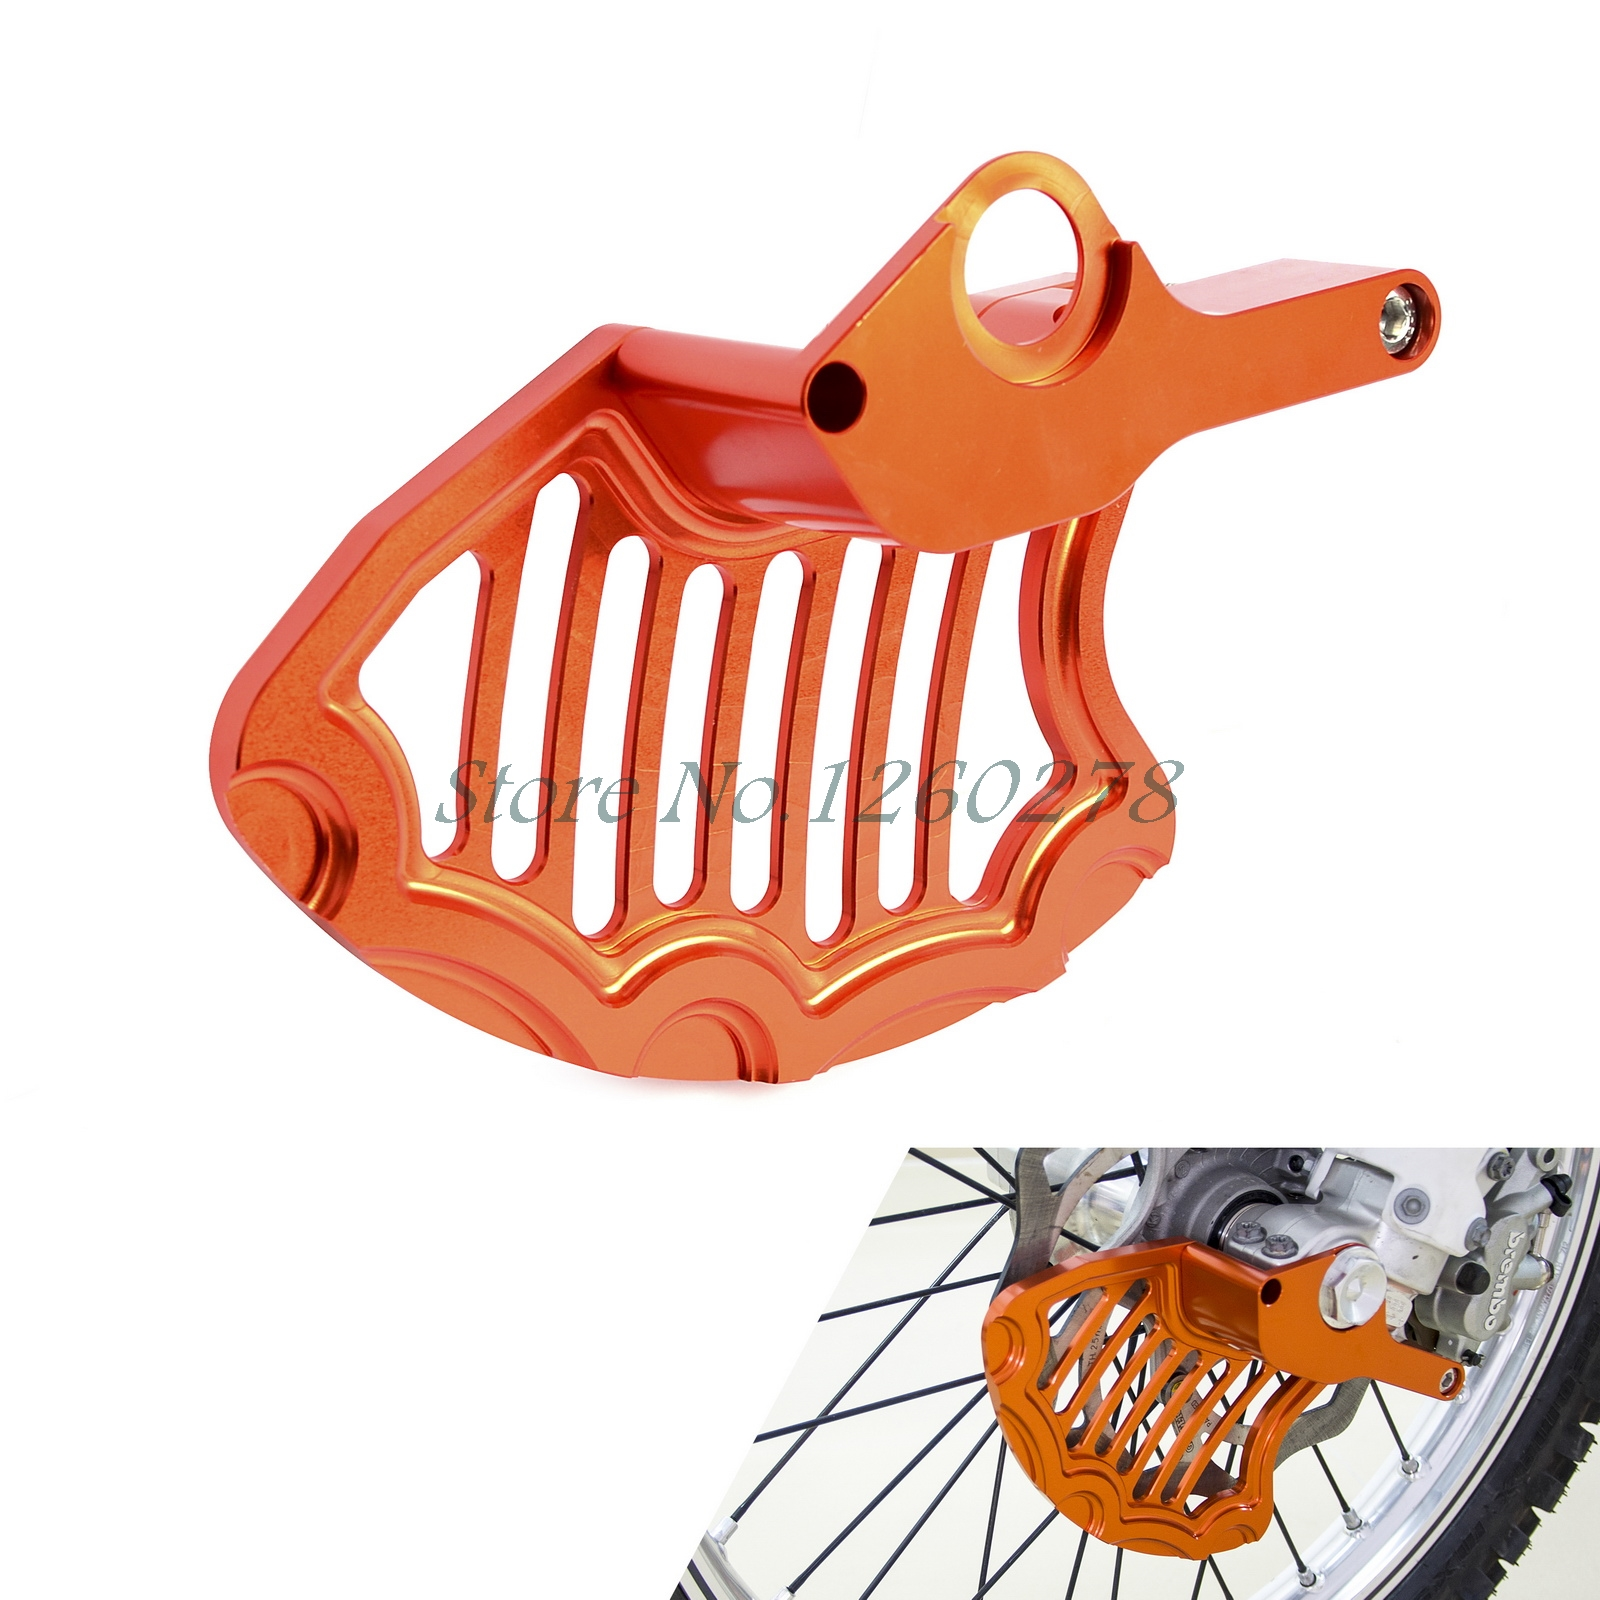 Motorcycle Brake Disc Rotor Guard For KTM 125-450 SX/XC/SX-F/XC-F 2015 2016 2017 250-500 XC-W/EXC/XCF-W 2016 2017 motorcycle front and rear brake pads for ktm exc r450 2008 sx f 450 usd 2003 2008 xc f xcr w 450 2008 black brake disc pad